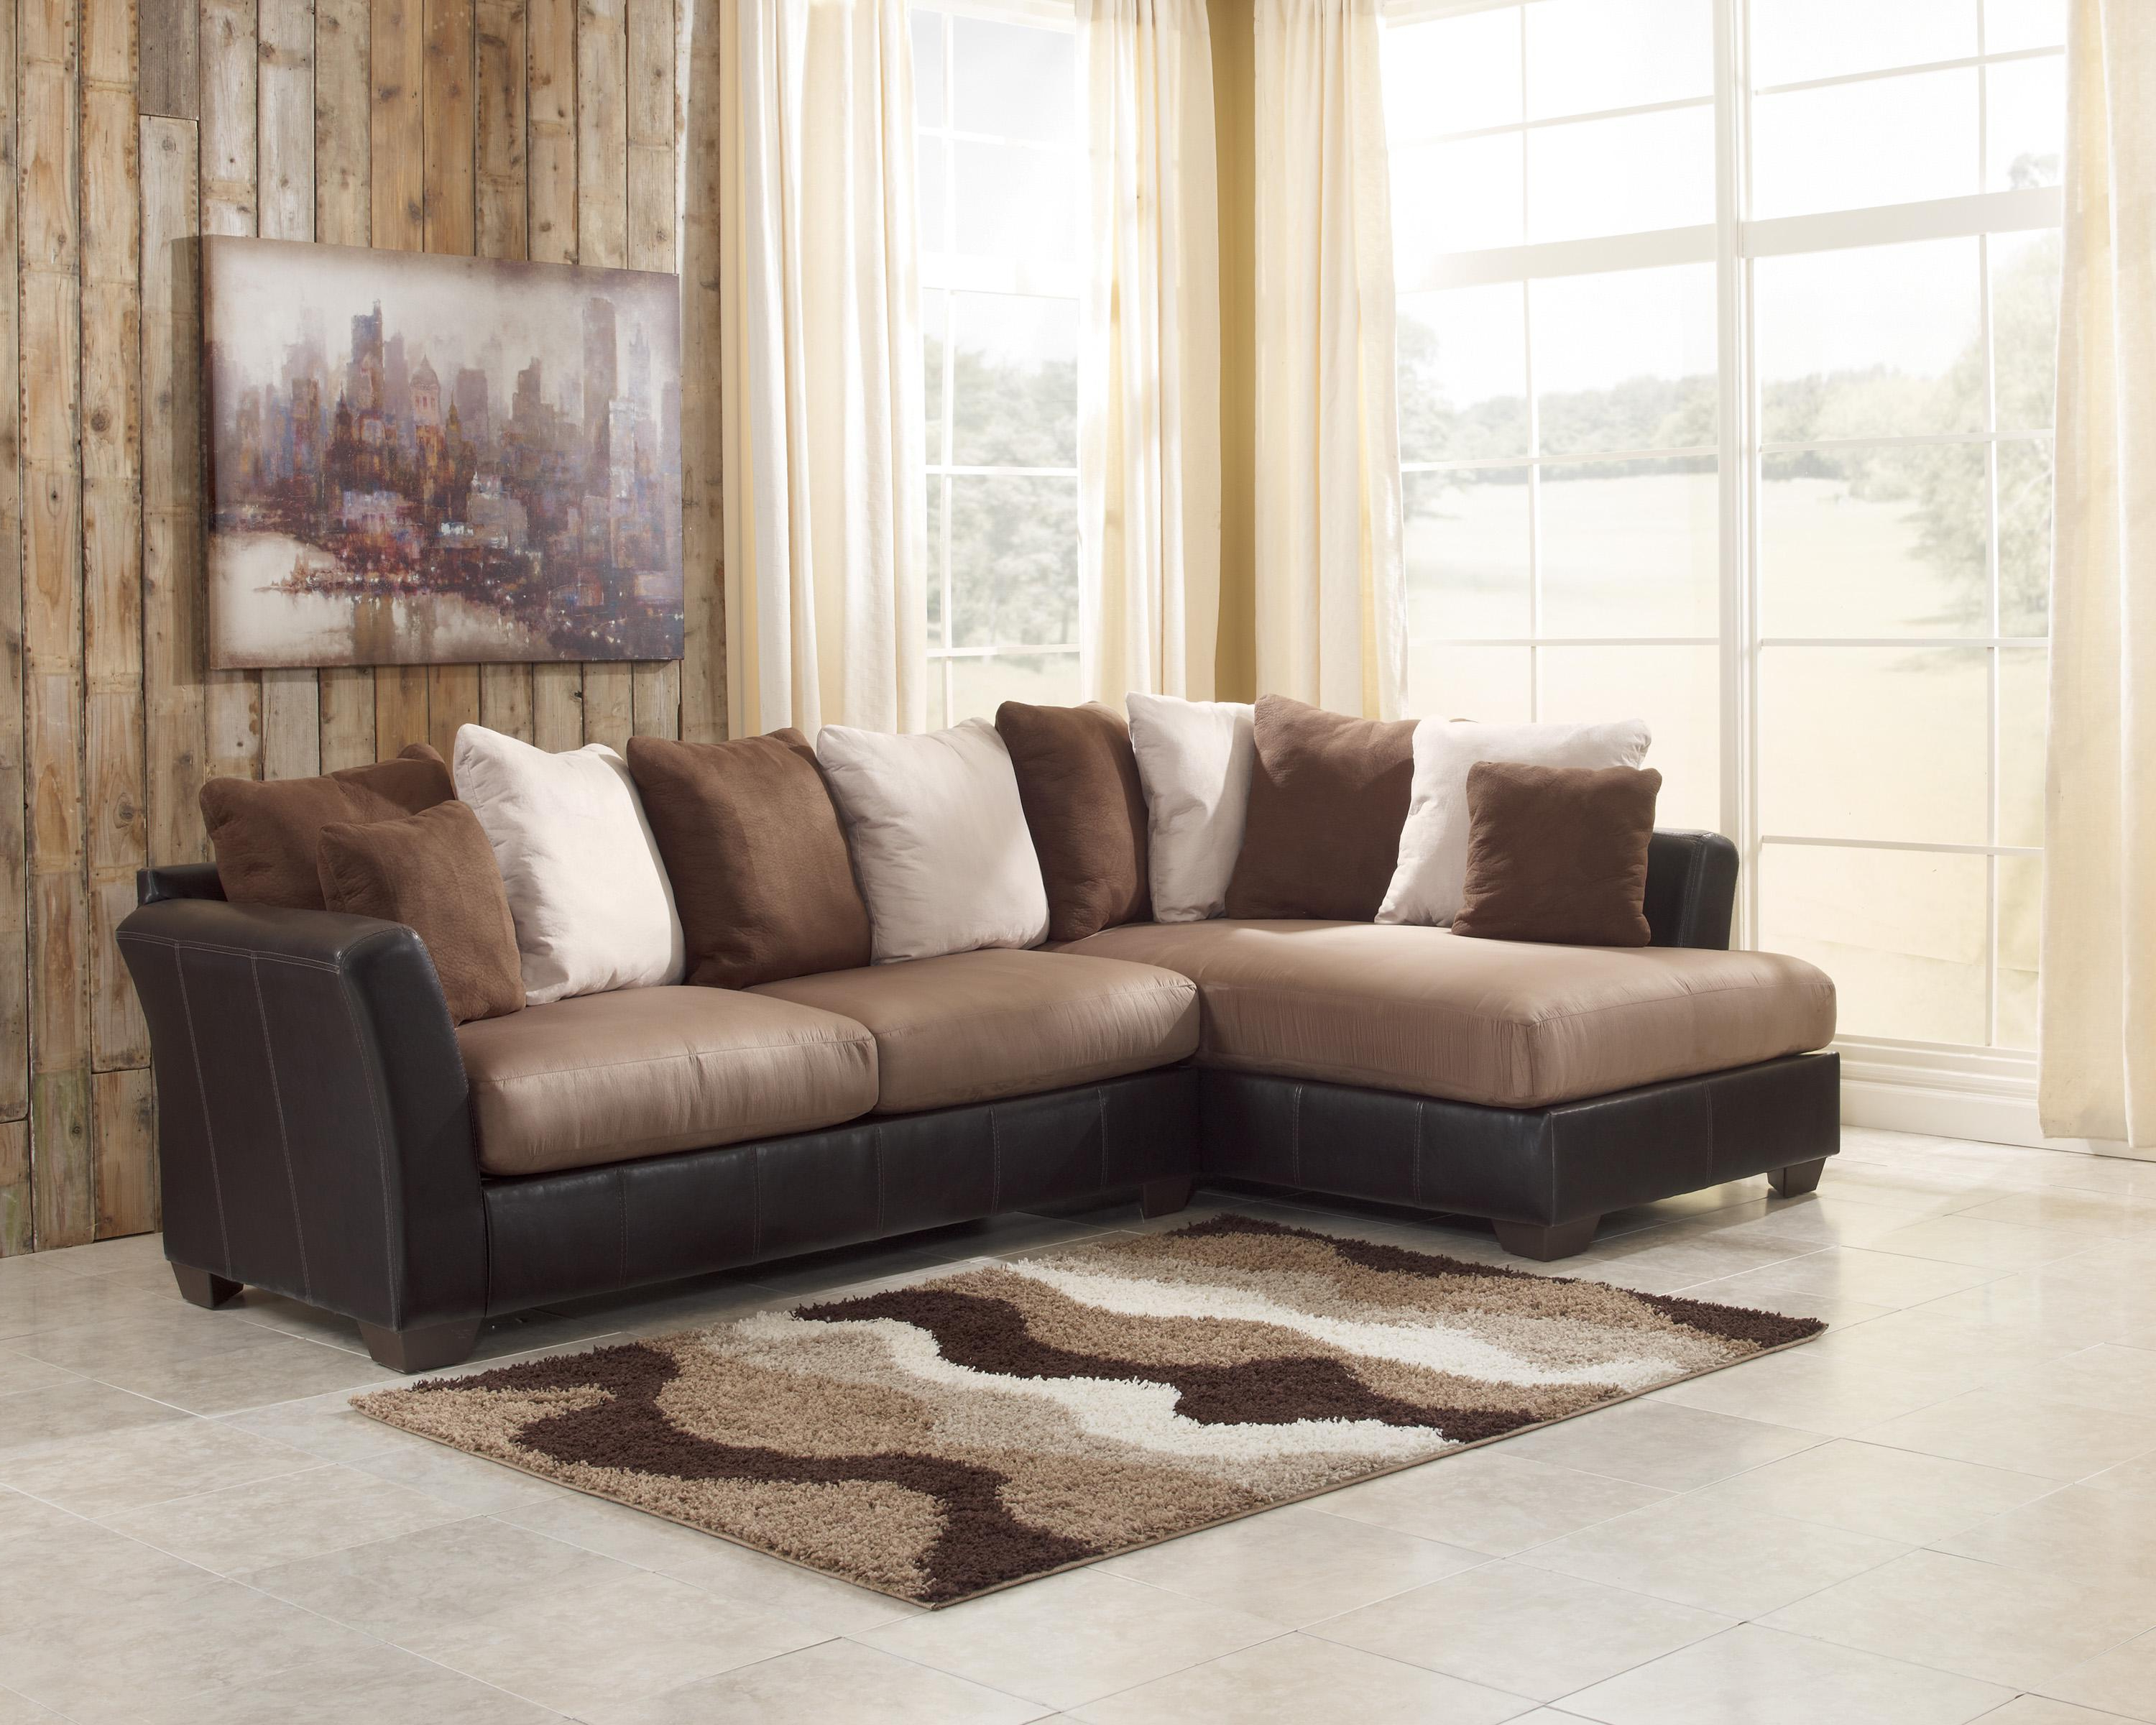 Most Current 2 Piece Sectional Sofas – Home Design Ideas And Pictures Inside Delano 2 Piece Sectionals With Raf Oversized Chaise (View 18 of 20)